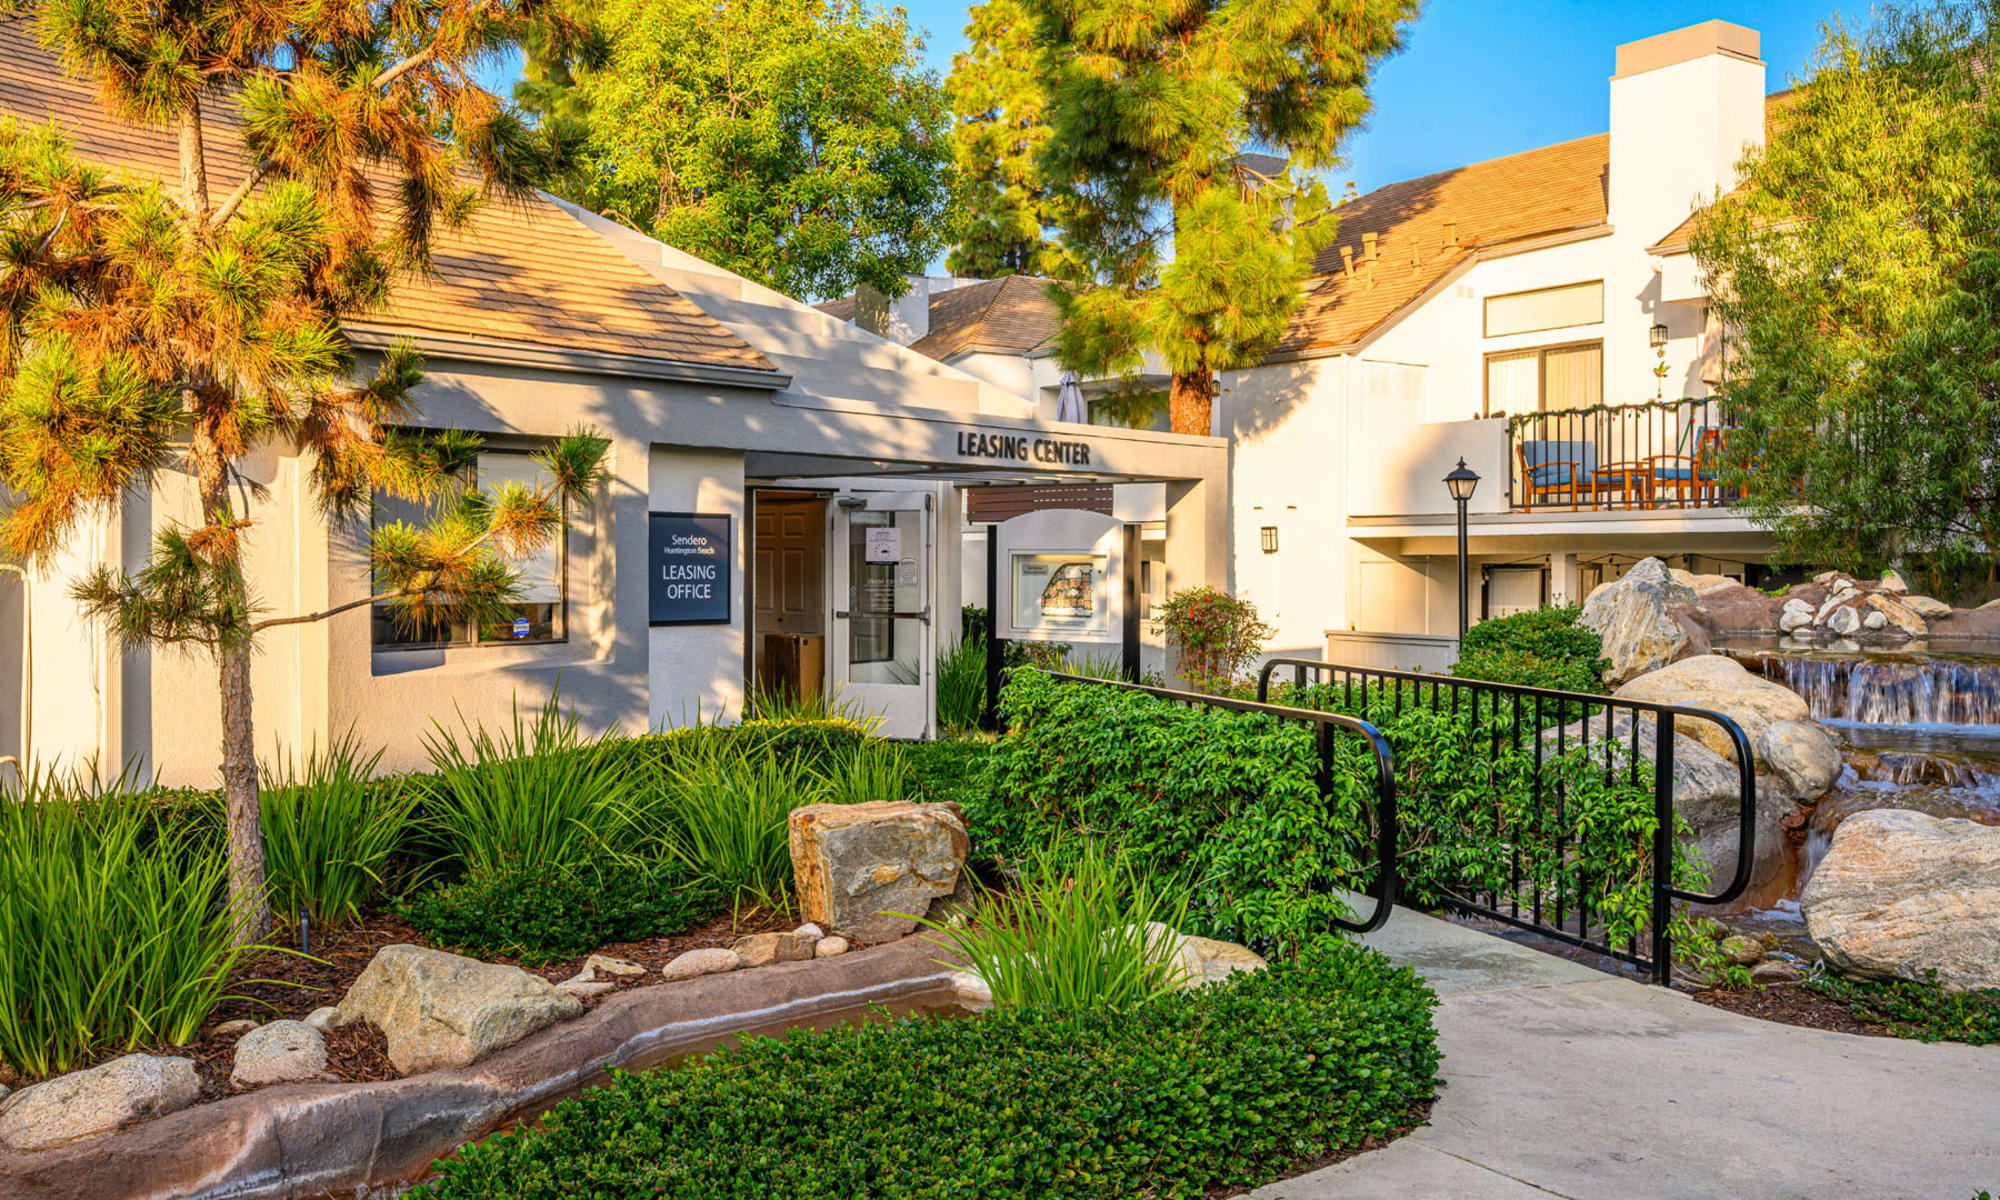 Professionally landscaped grounds outside the leasing office and throughout the community at Sendero Huntington Beach in Huntington Beach, California